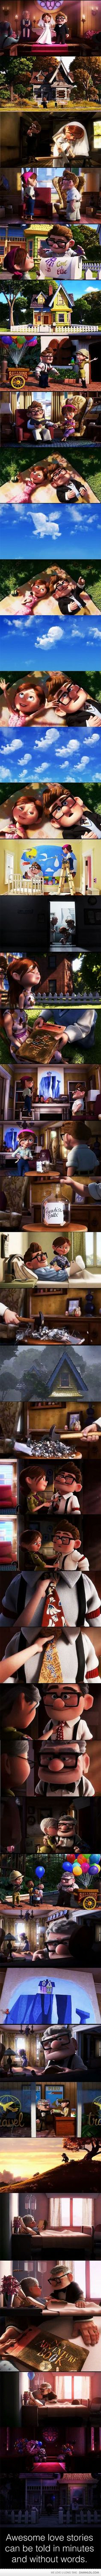 The greatest love story. Always makes me cry!